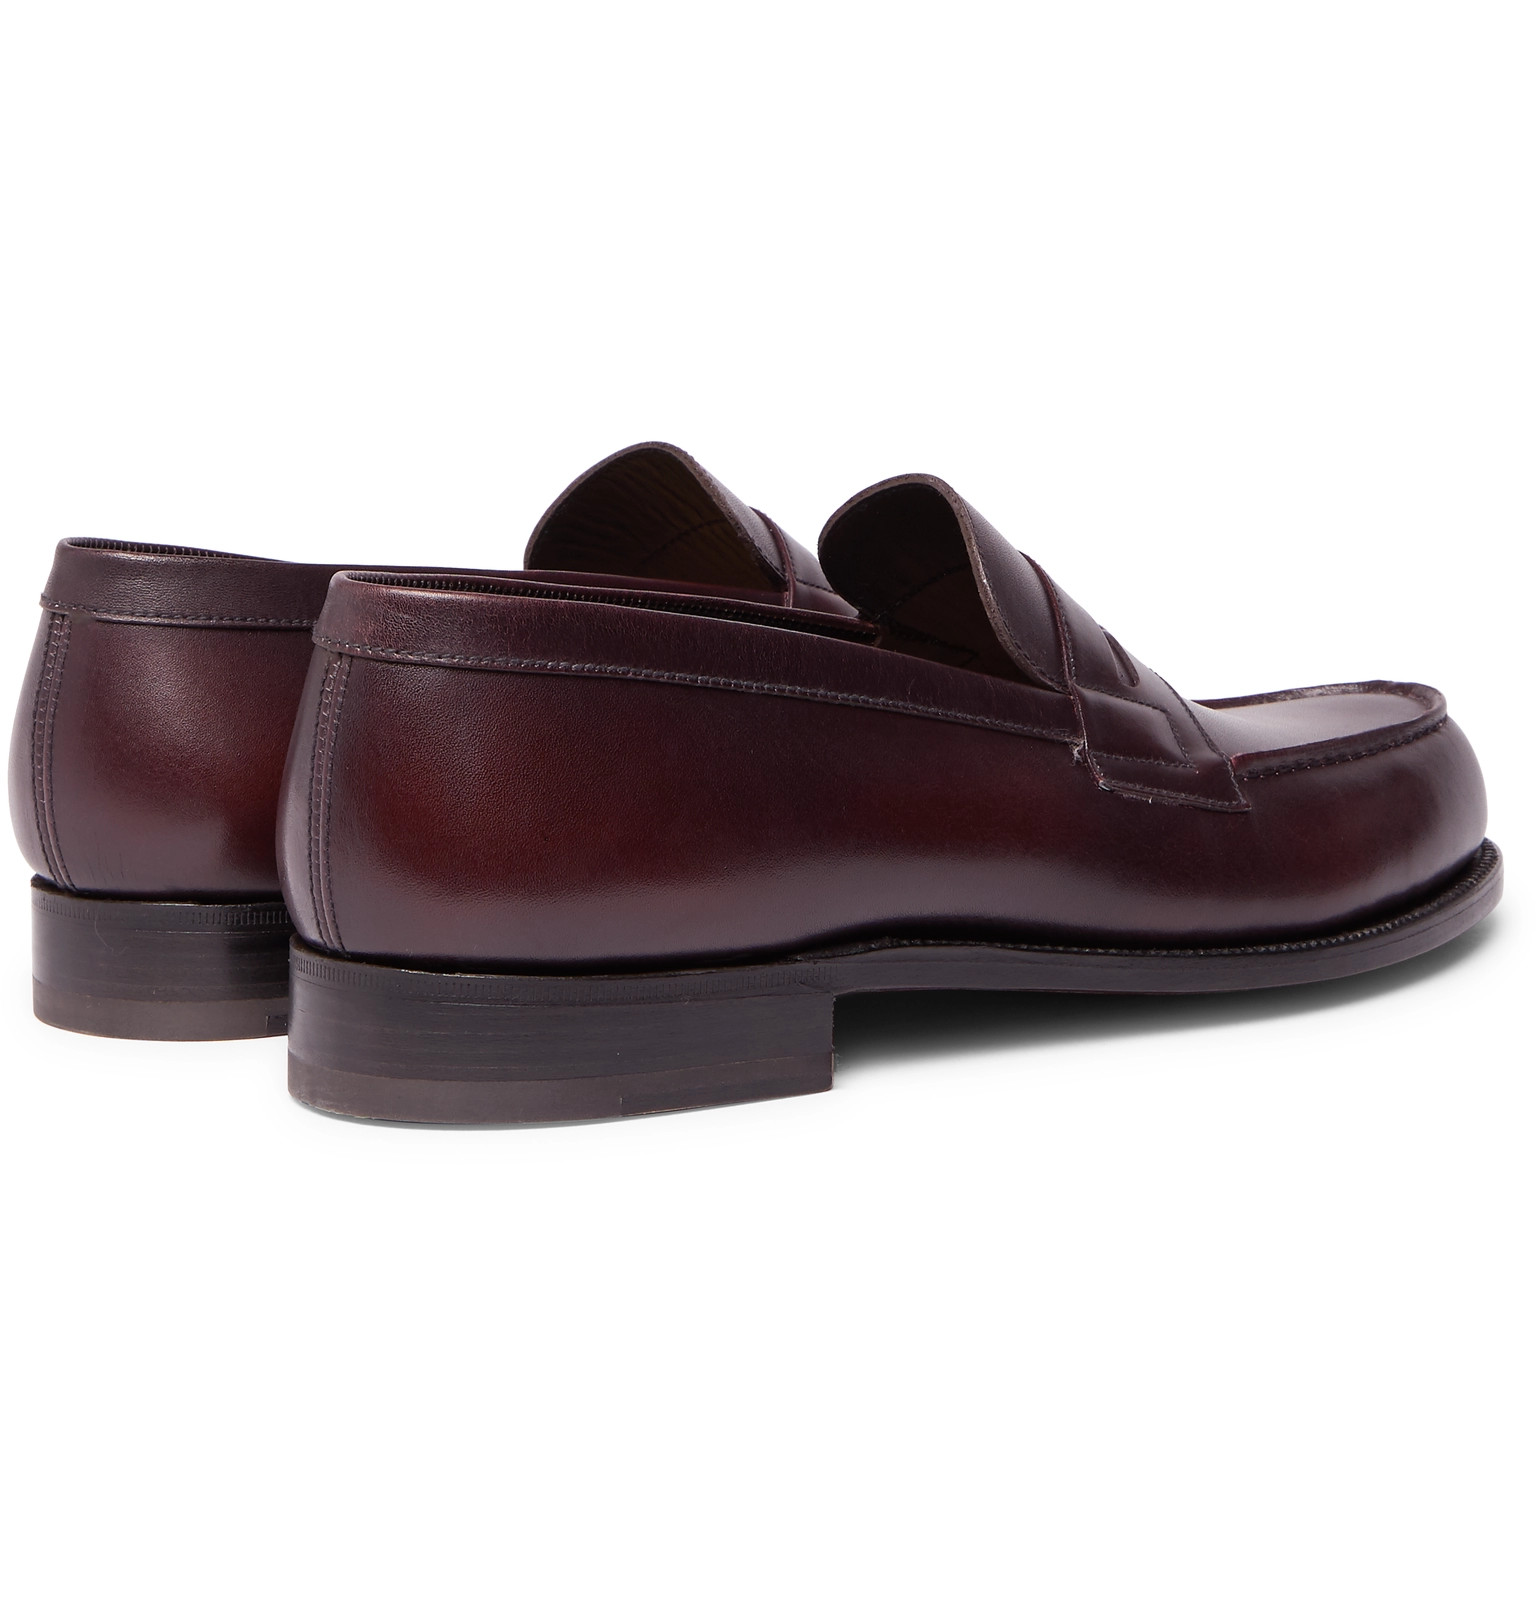 a15aaf9c1b3 J.M. Weston - 180 The Moccasin Burnished-Leather Penny Loafers